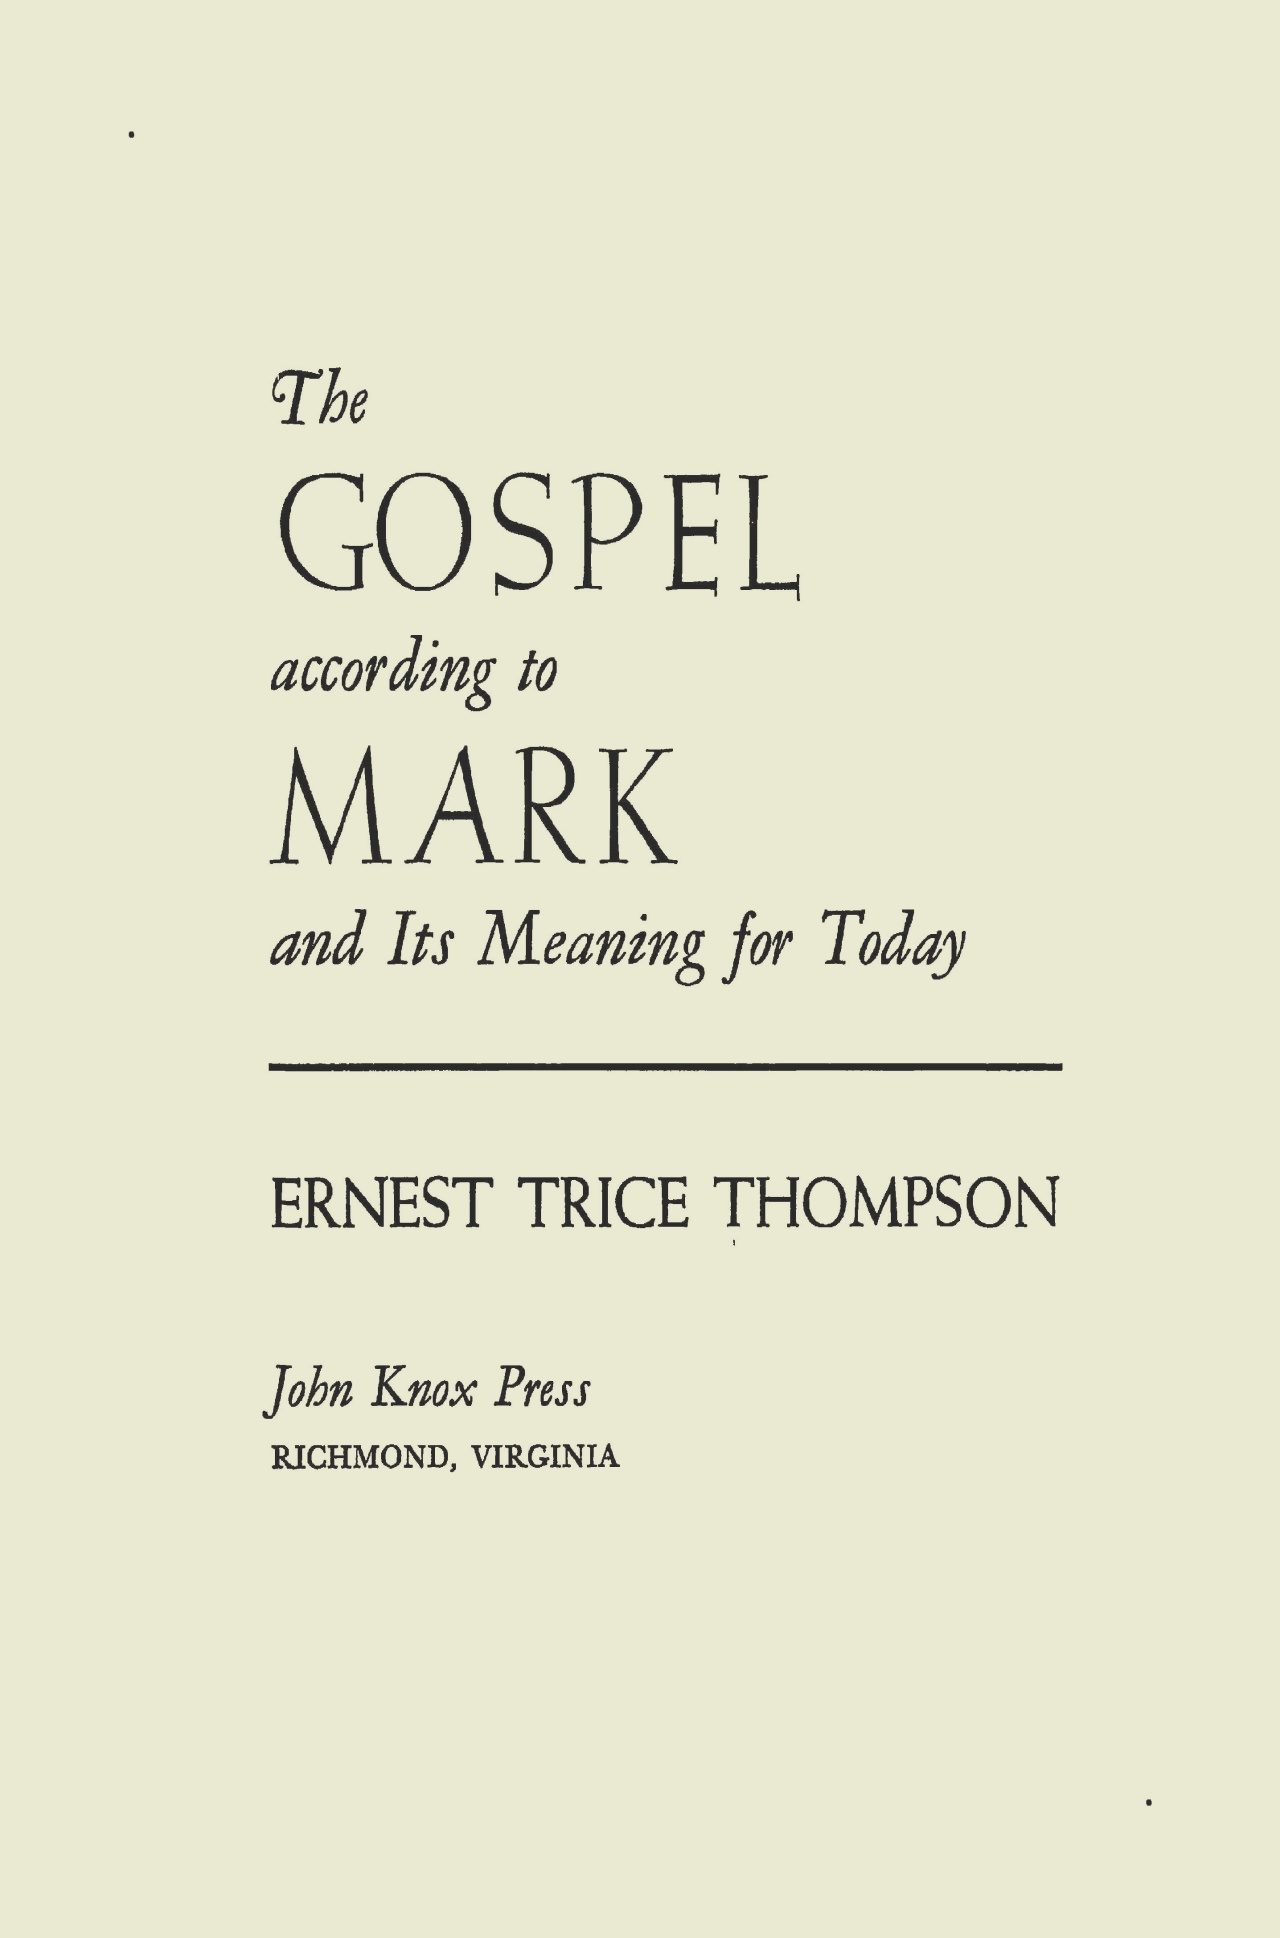 Thompson, Ernest Trice, The Gospel According to Mark and Its Meaning For Today Title Page.jpg